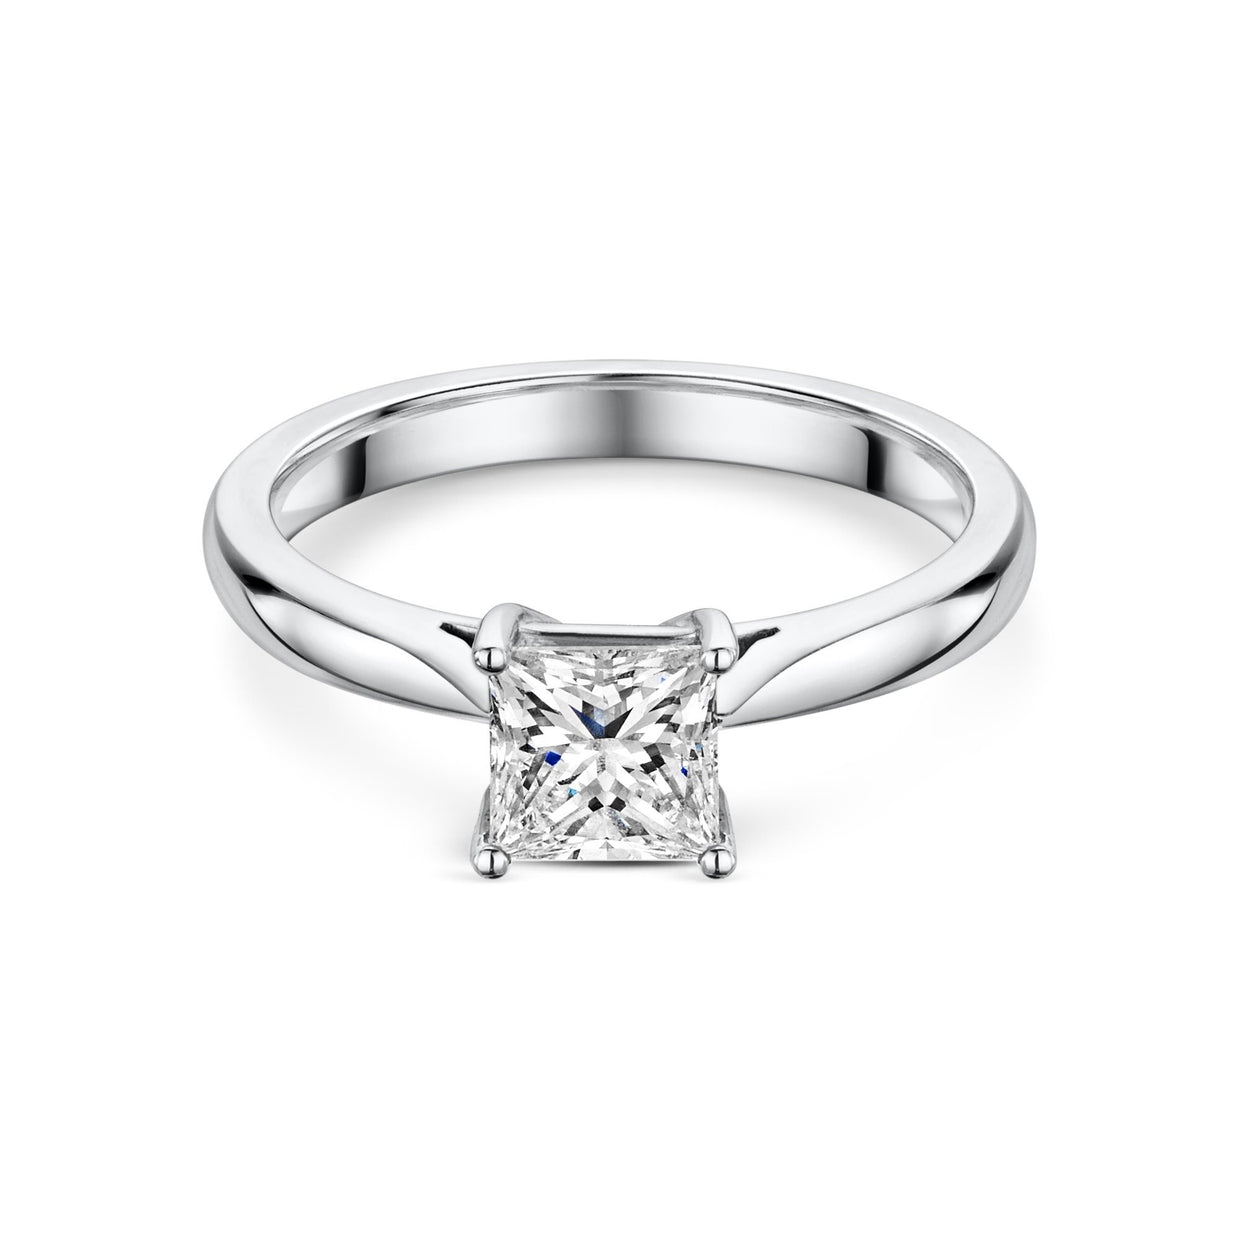 1ct Diamond Solitaire Engagement Ring in Platinum-Hamilton & Inches